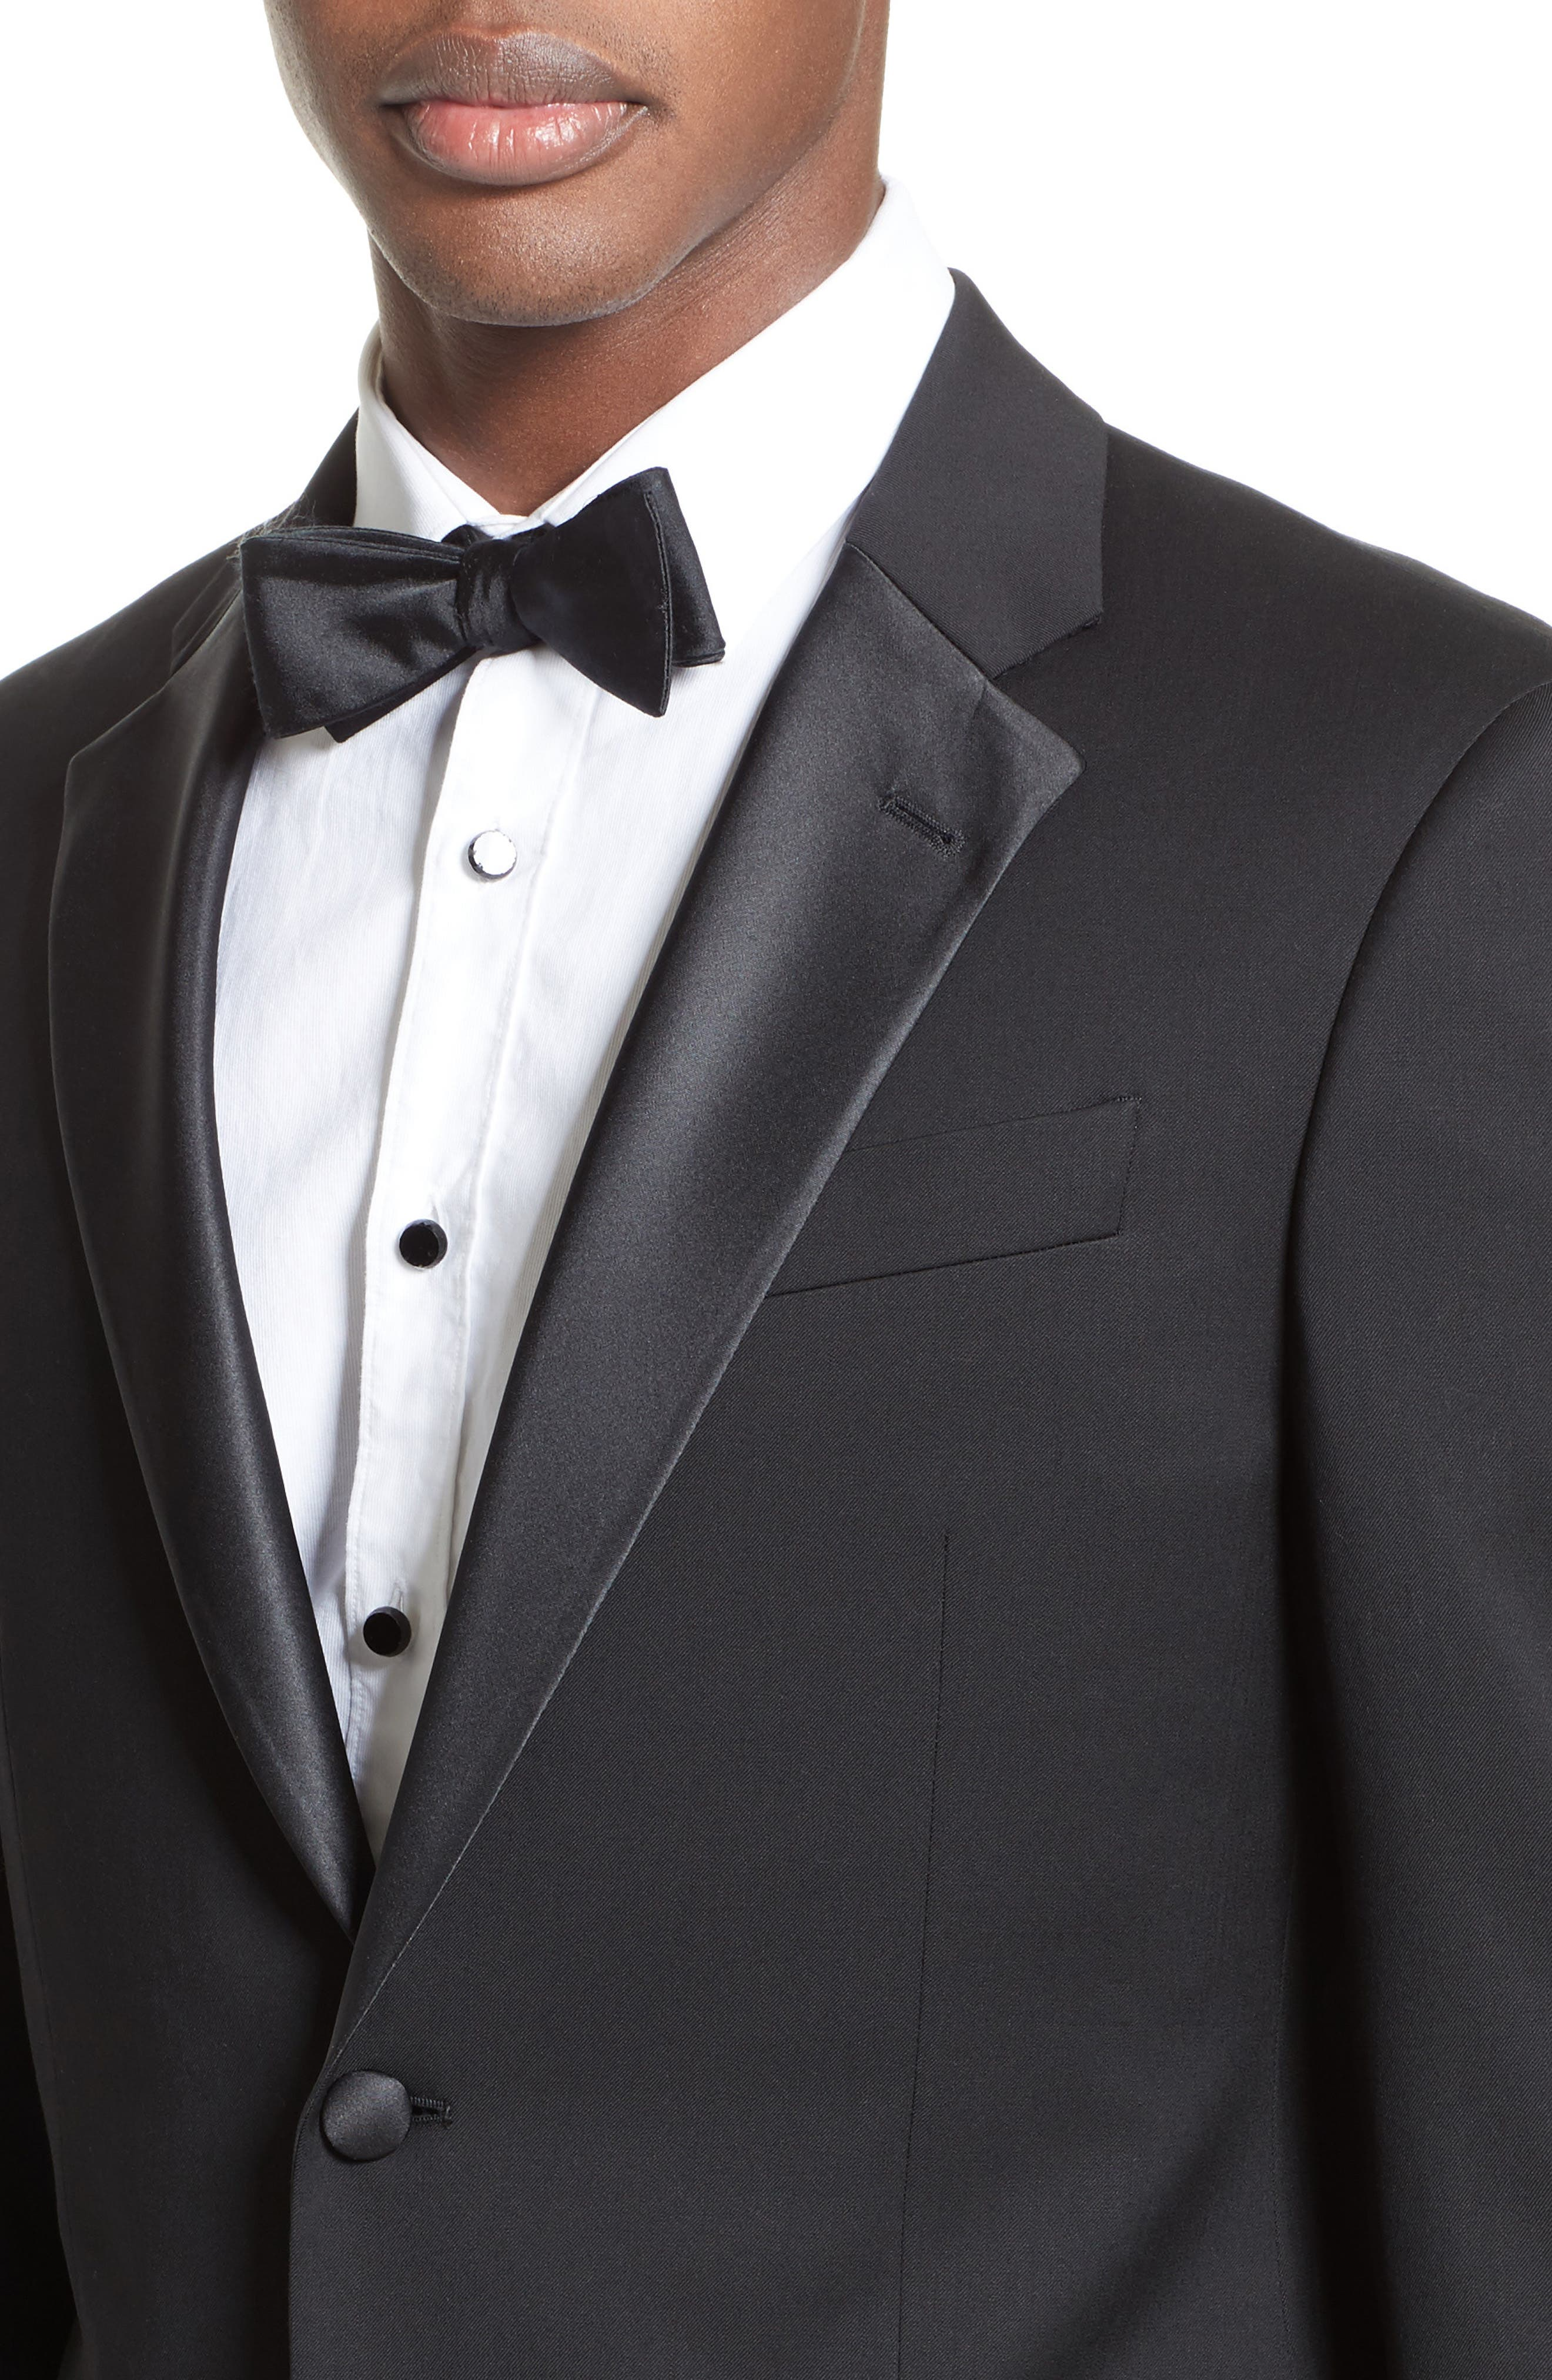 Trim Fit Wool Tuxedo,                             Alternate thumbnail 5, color,                             001